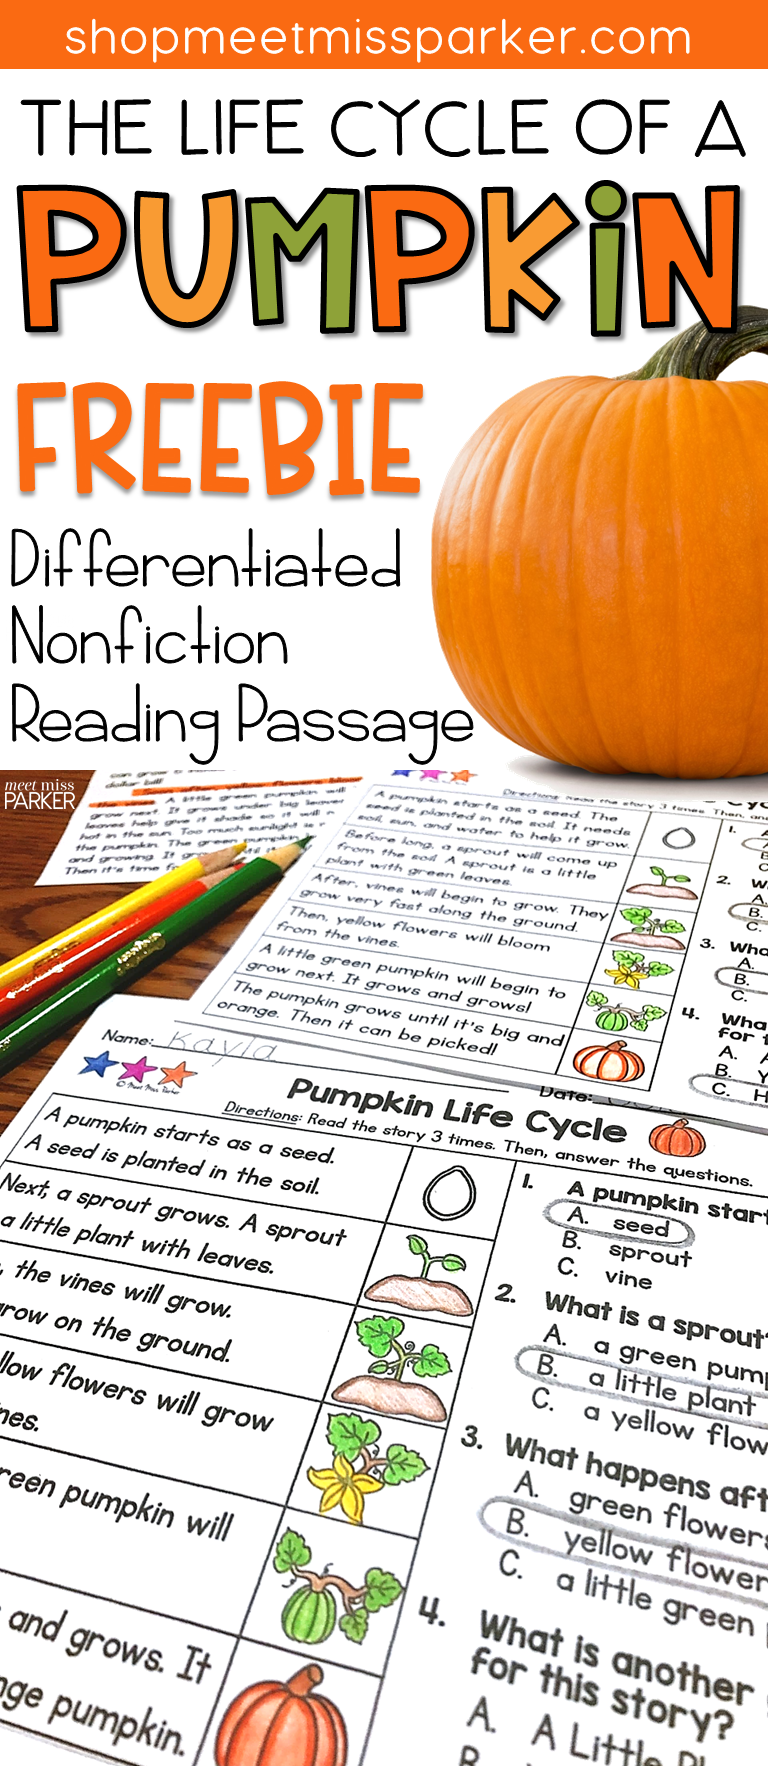 Pumpkin Life Cycle FREE Differentiated Reading Comprehension Passage ...